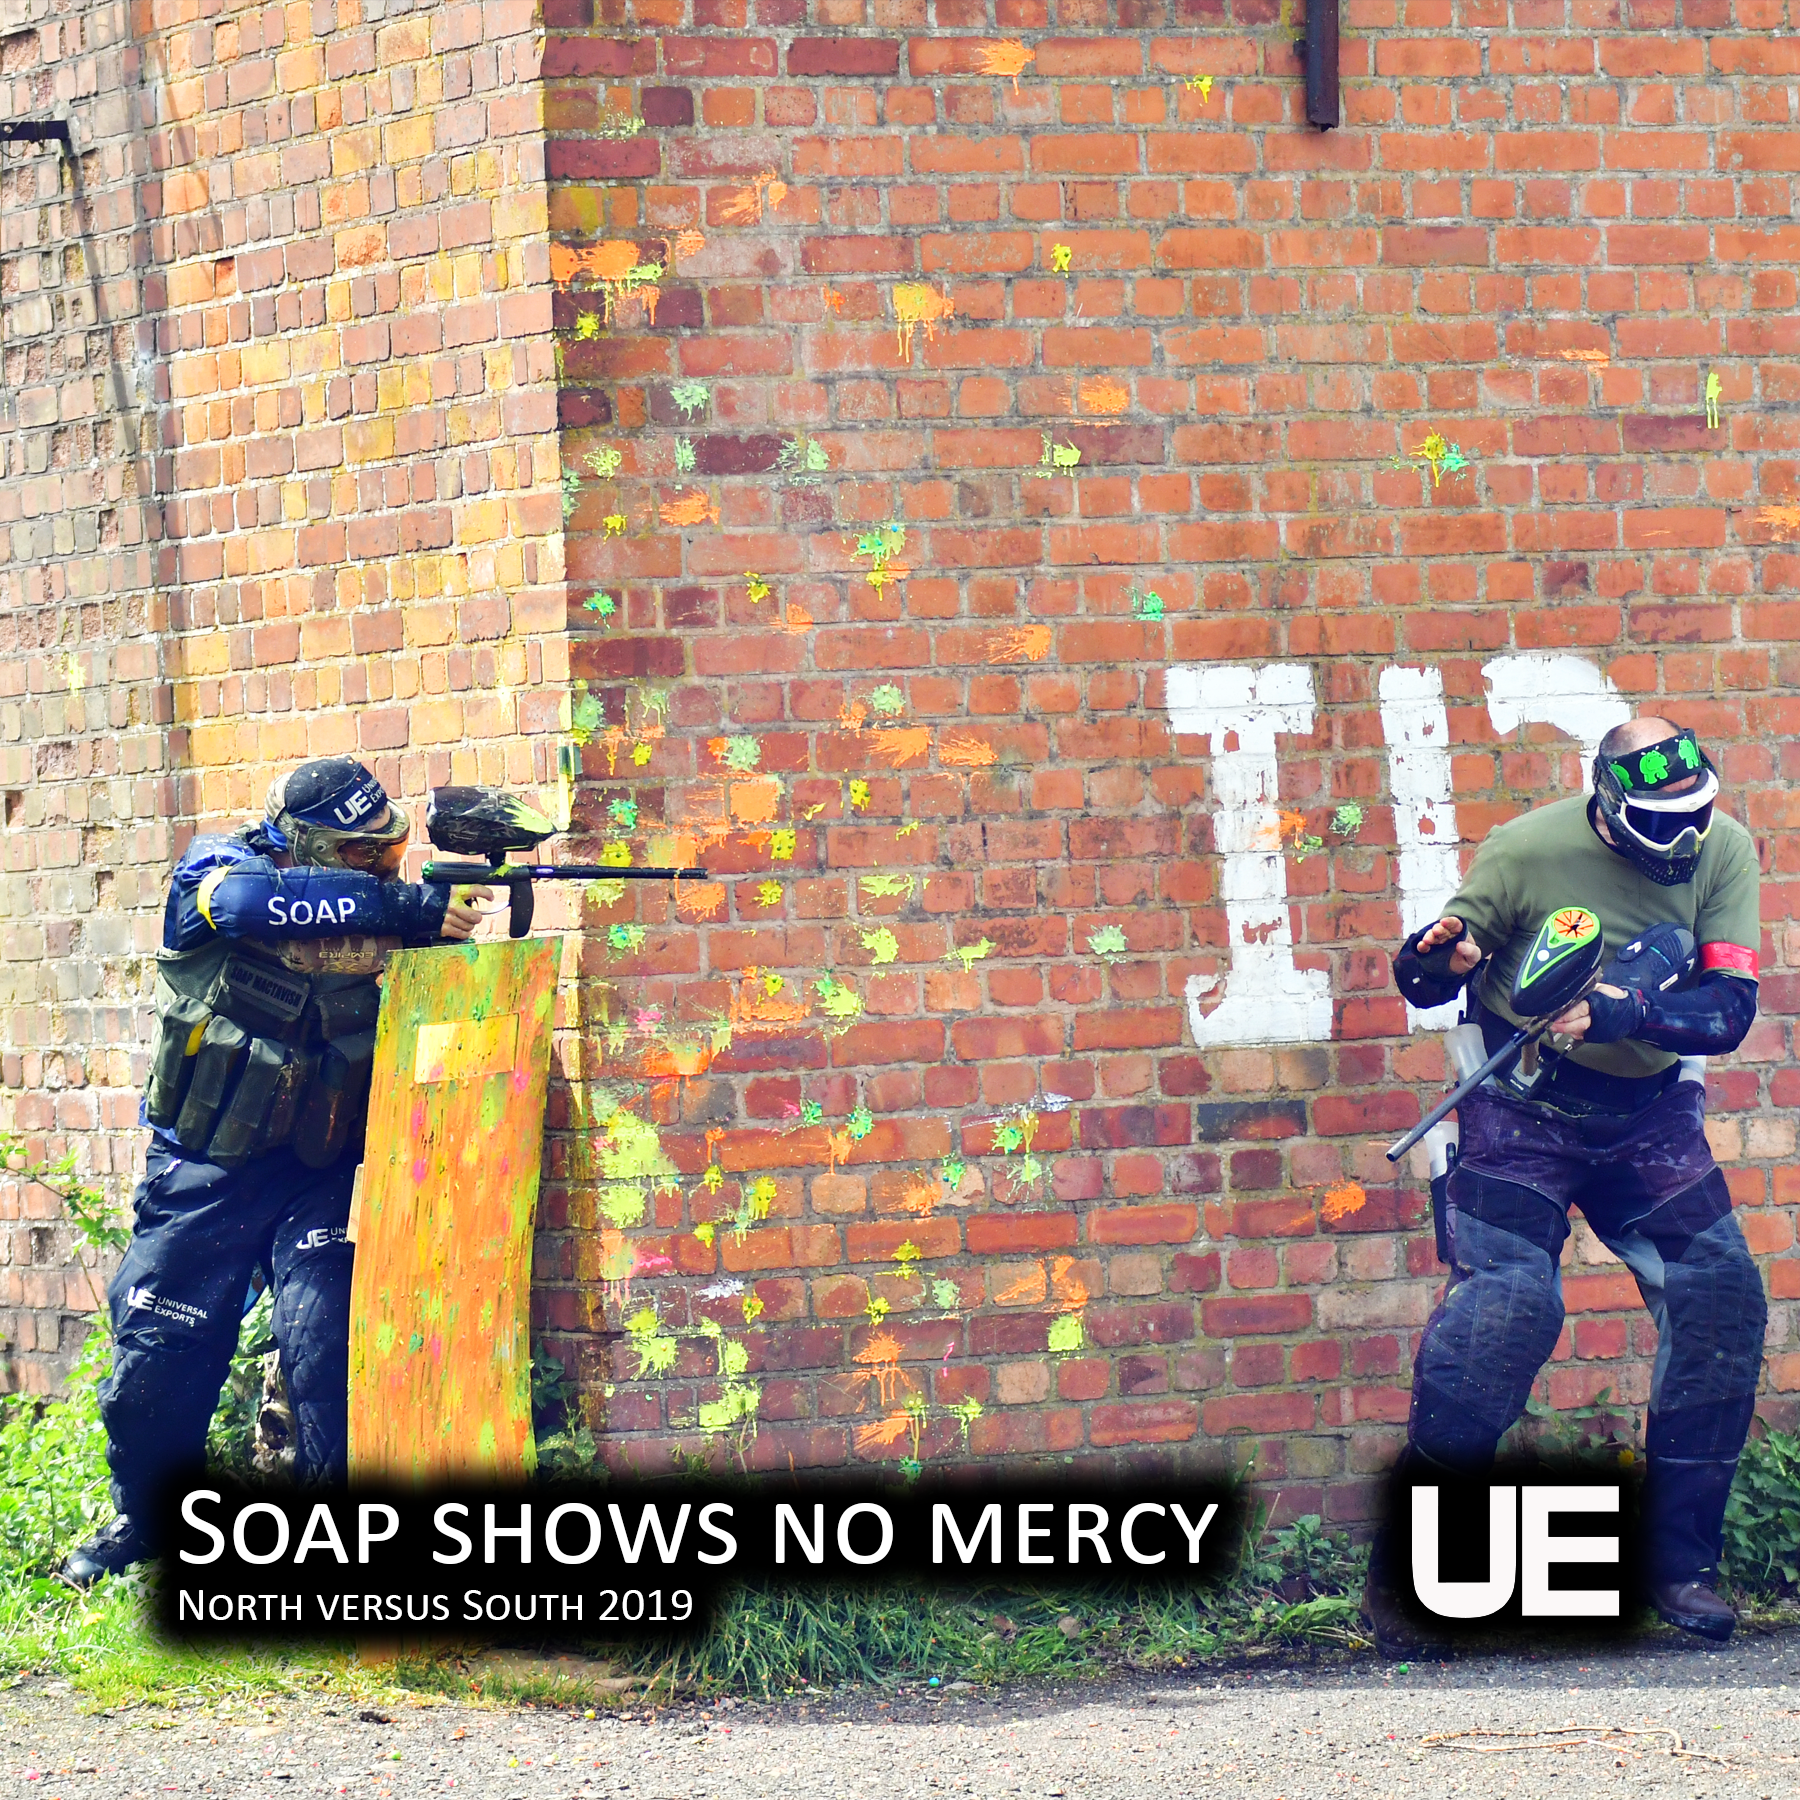 Soap shows no mercy